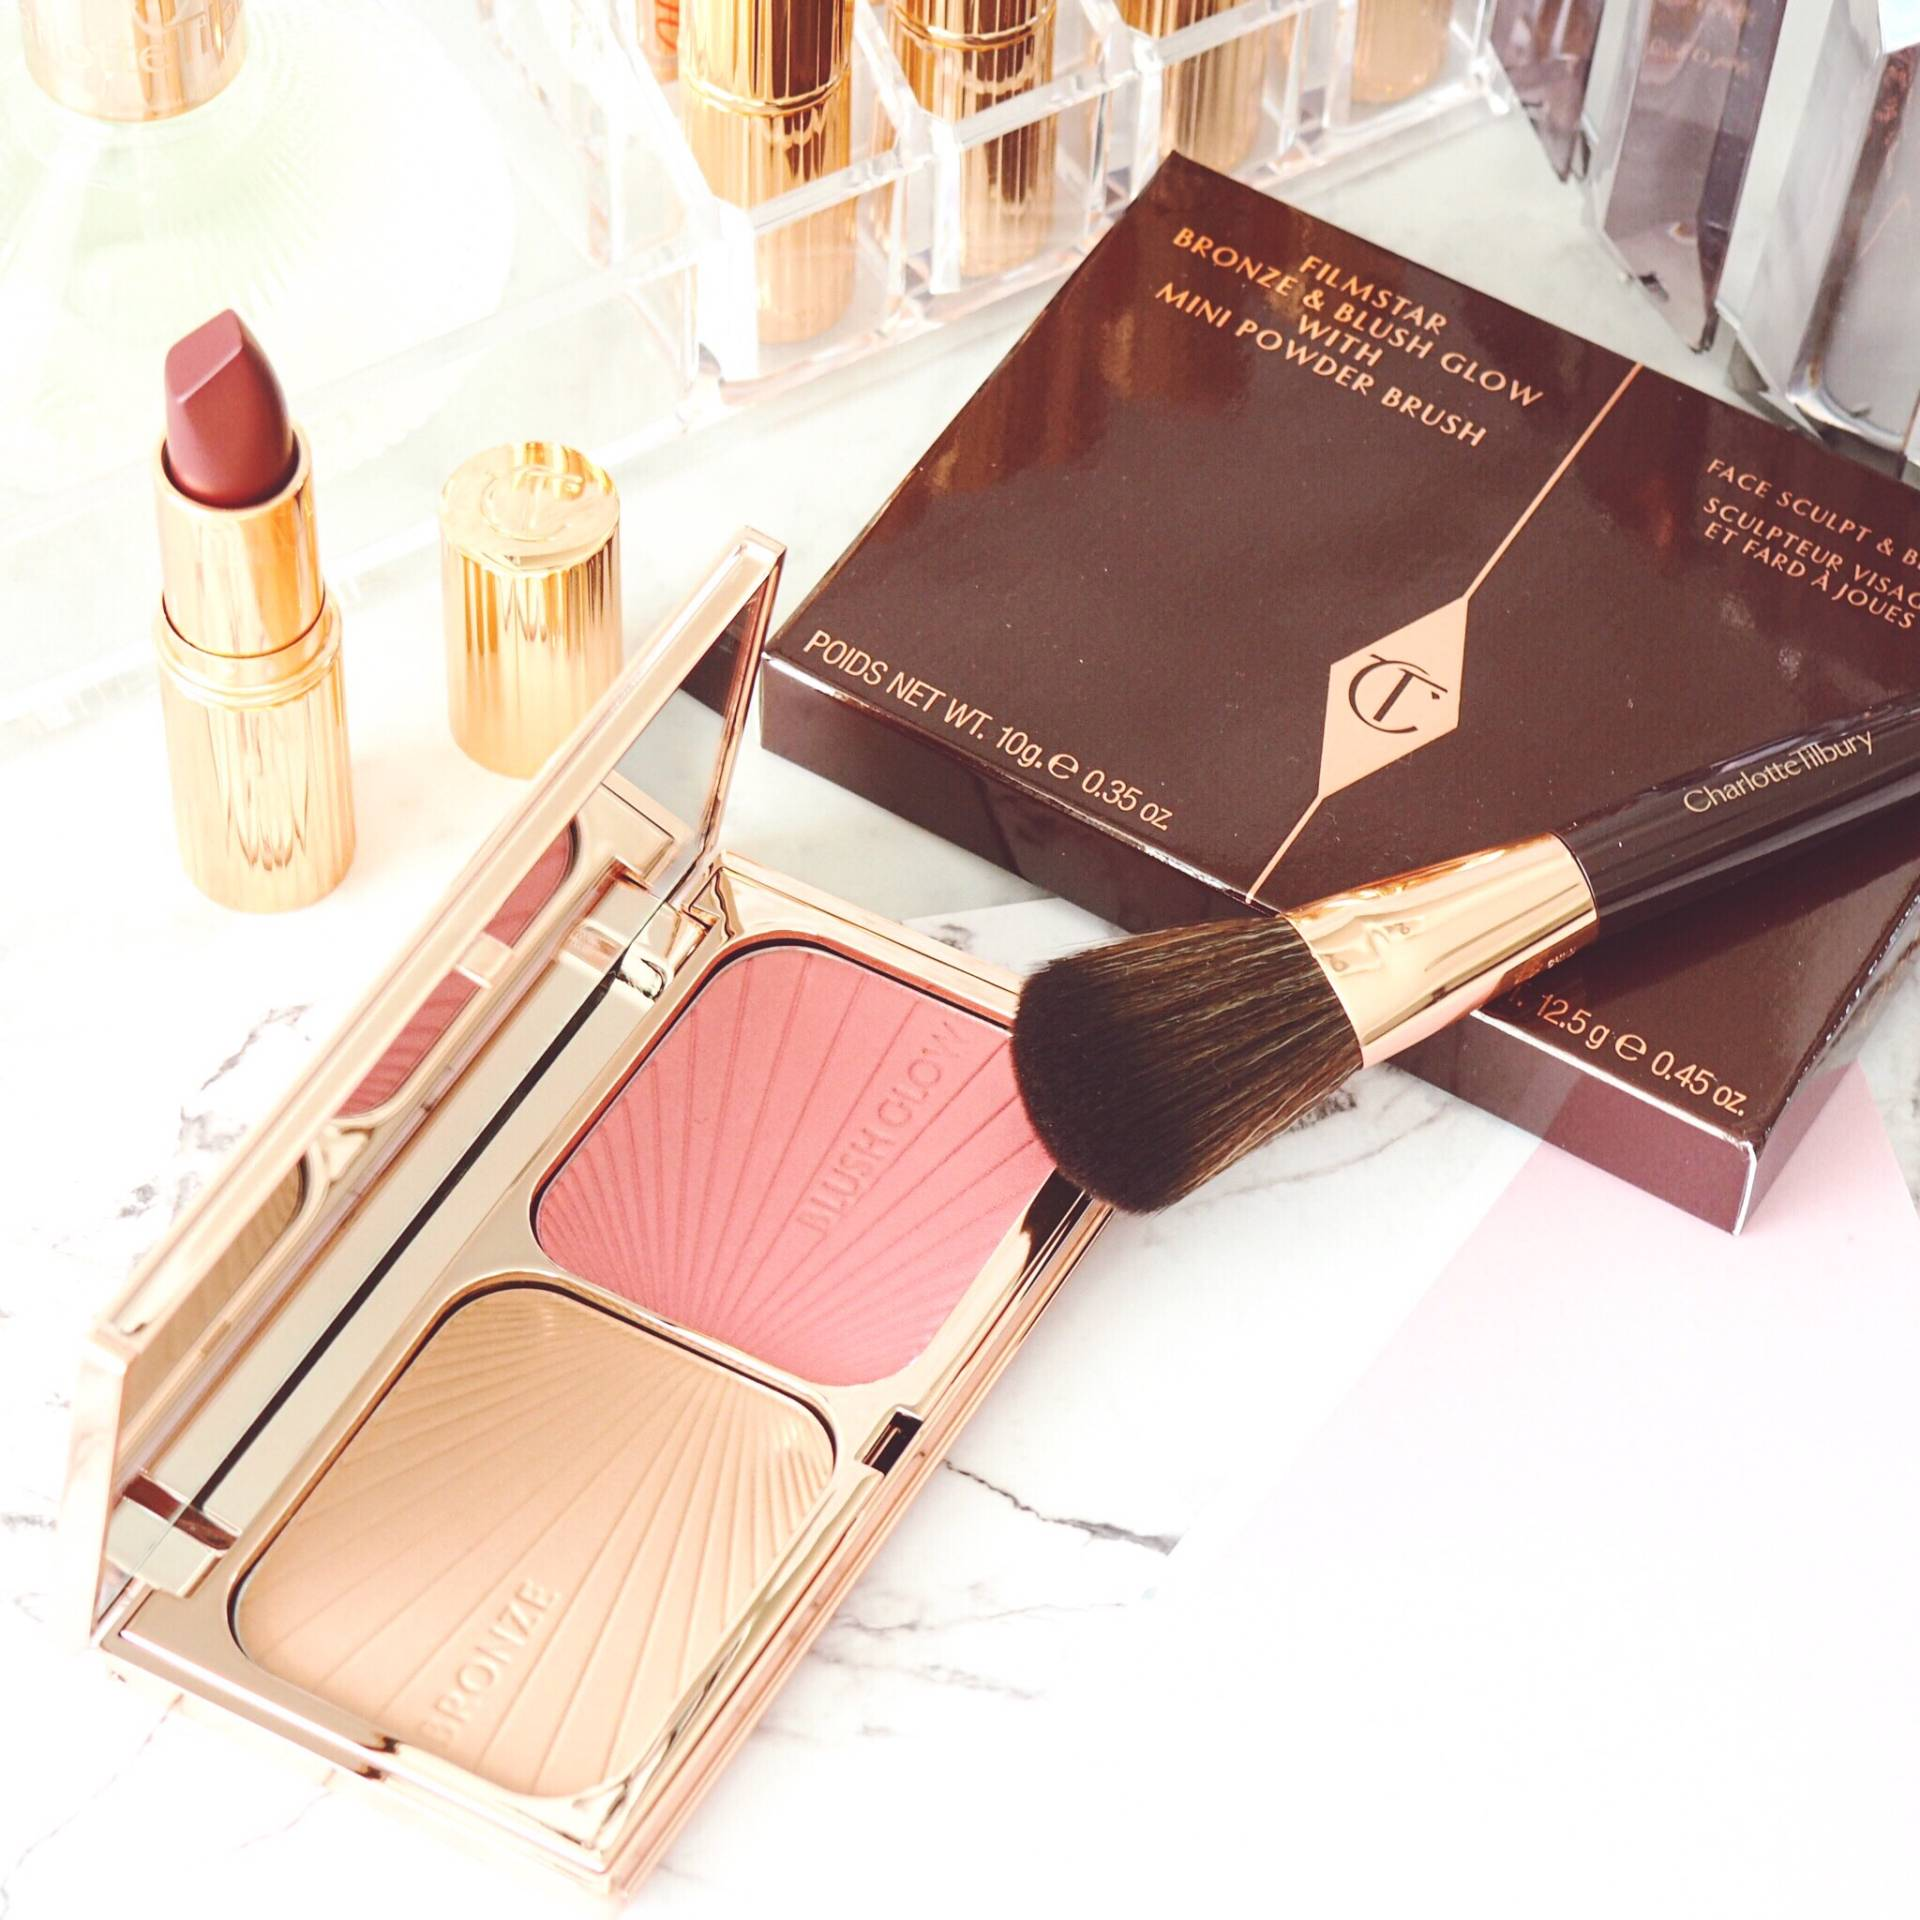 Charlotte Tilbury Filmstar Bronze and Blush Glow